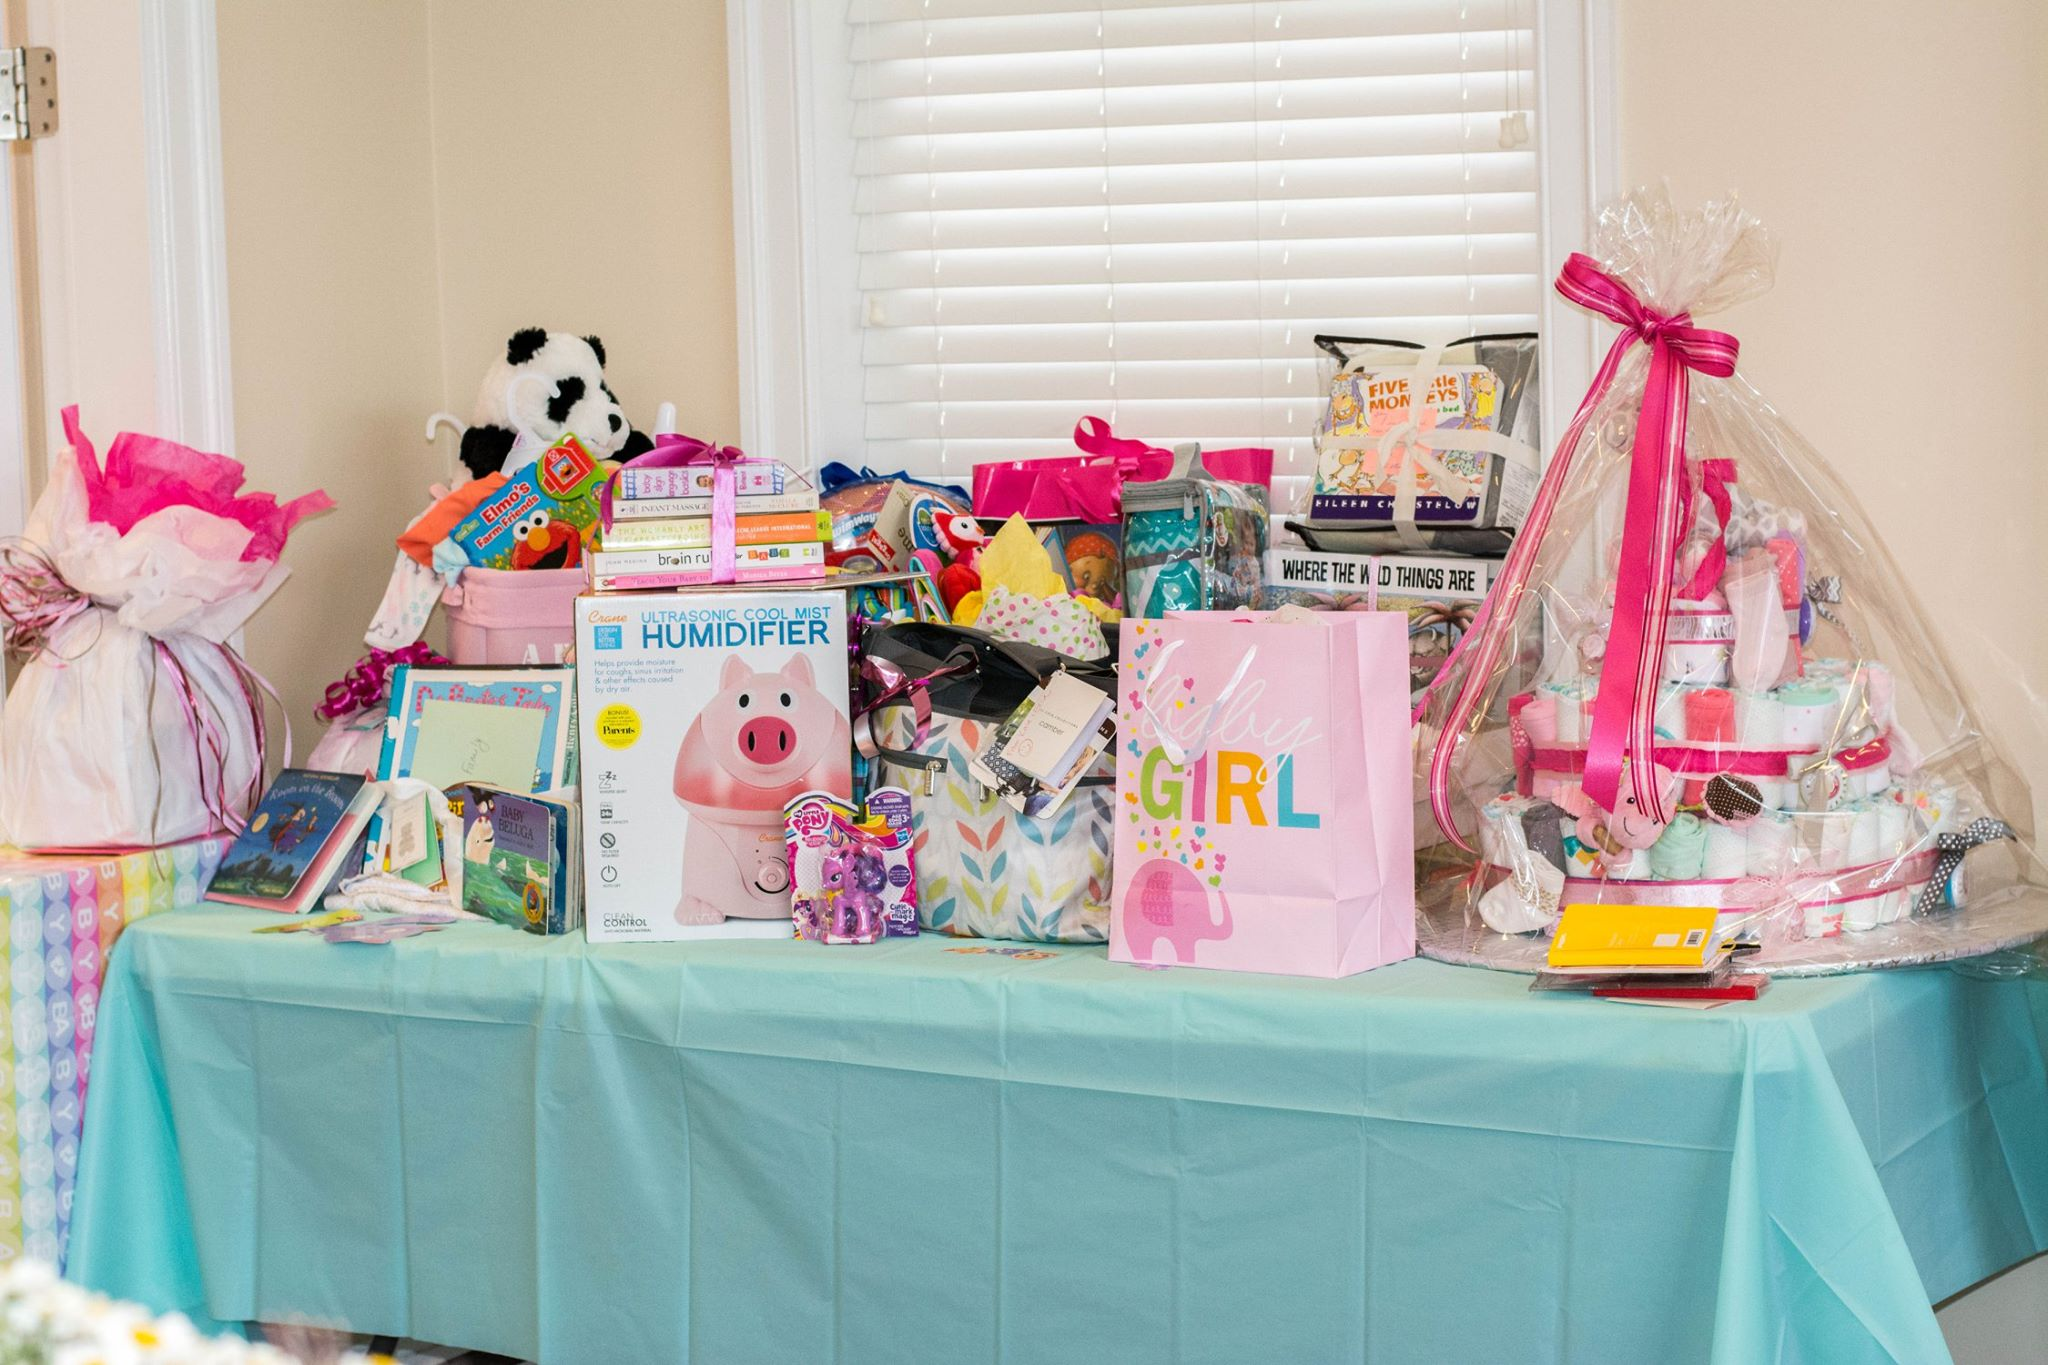 Baby Shower Gifts on Display